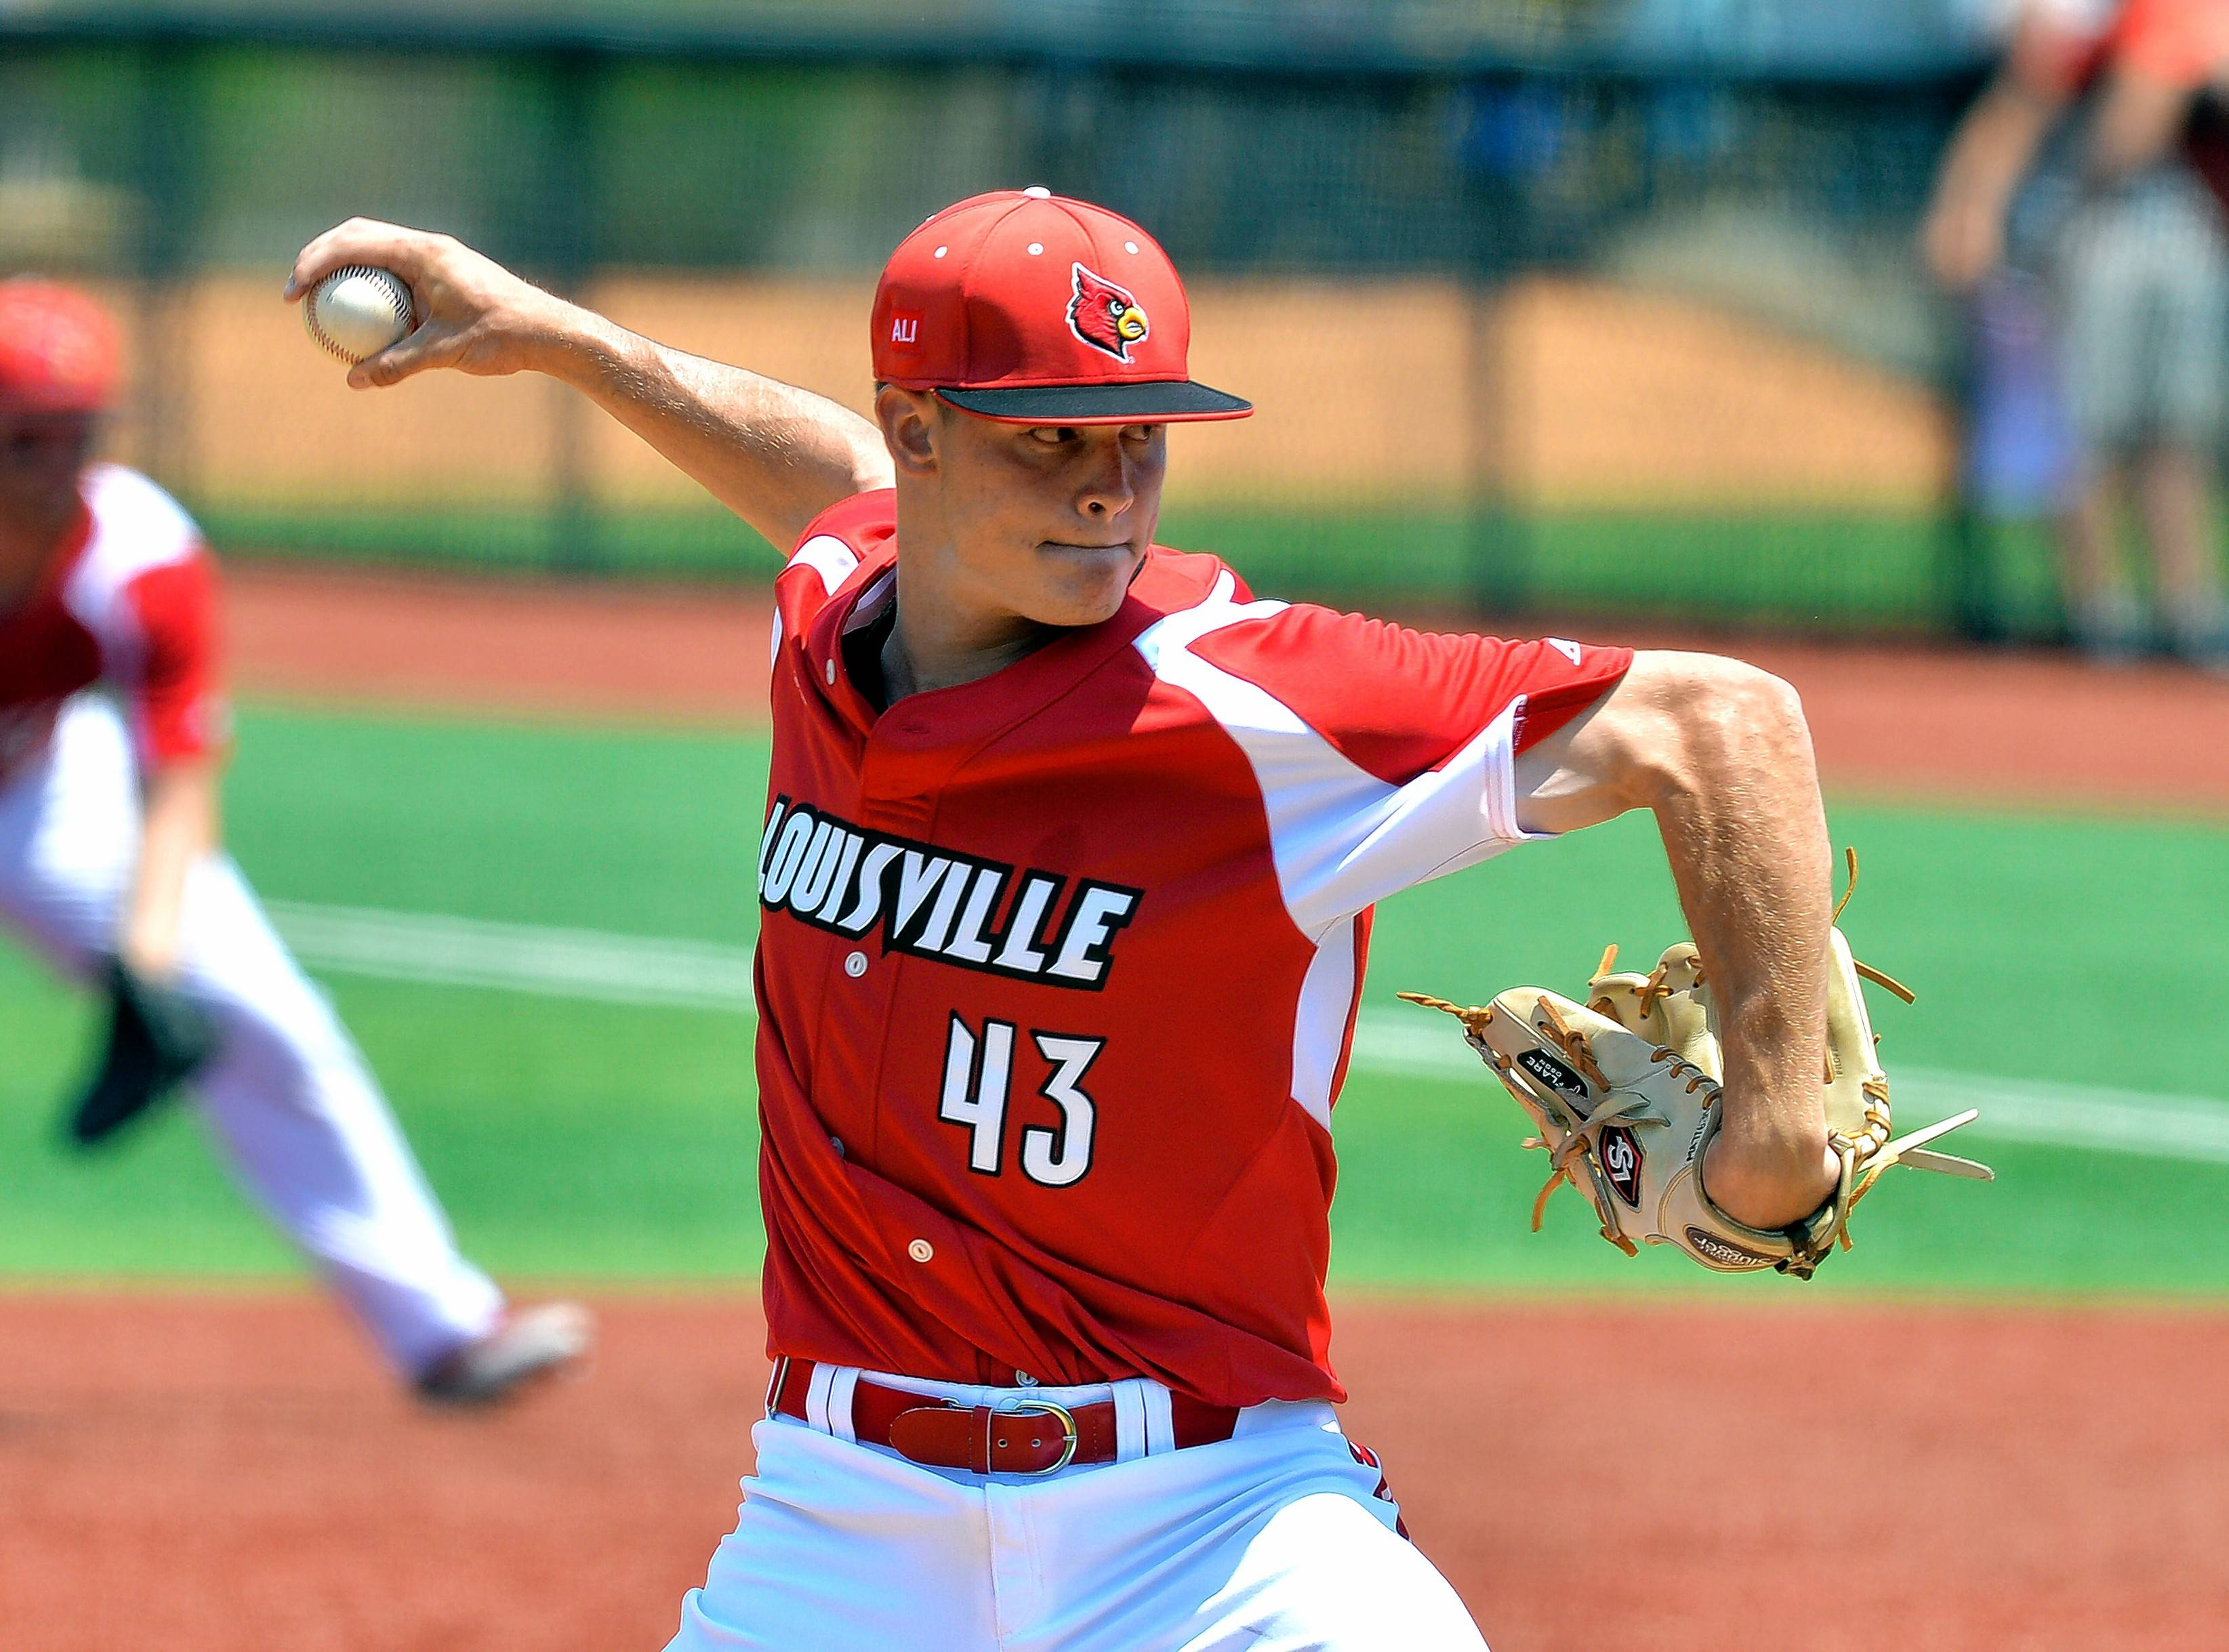 Louisville's Zack Burdi (43) pitches in to UC Santa Barbara side during the ninth inning of an NCAA college baseball tournament super regional game, Sunday, June 12, 2016 in Louisville Ky.